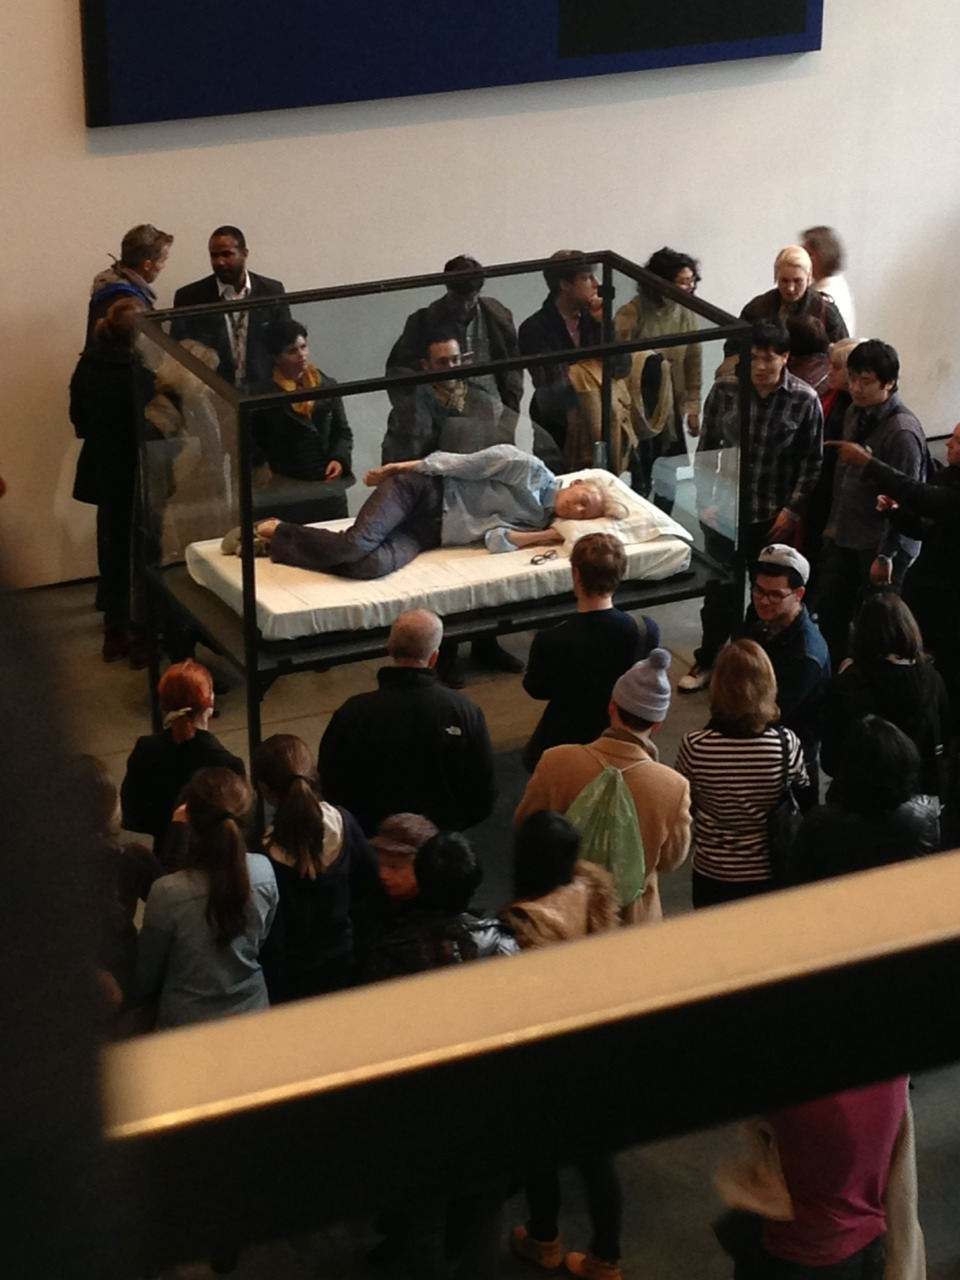 "I don't always get ""art"" - Tilda Swinton asleep in a glass box at the MoMA."